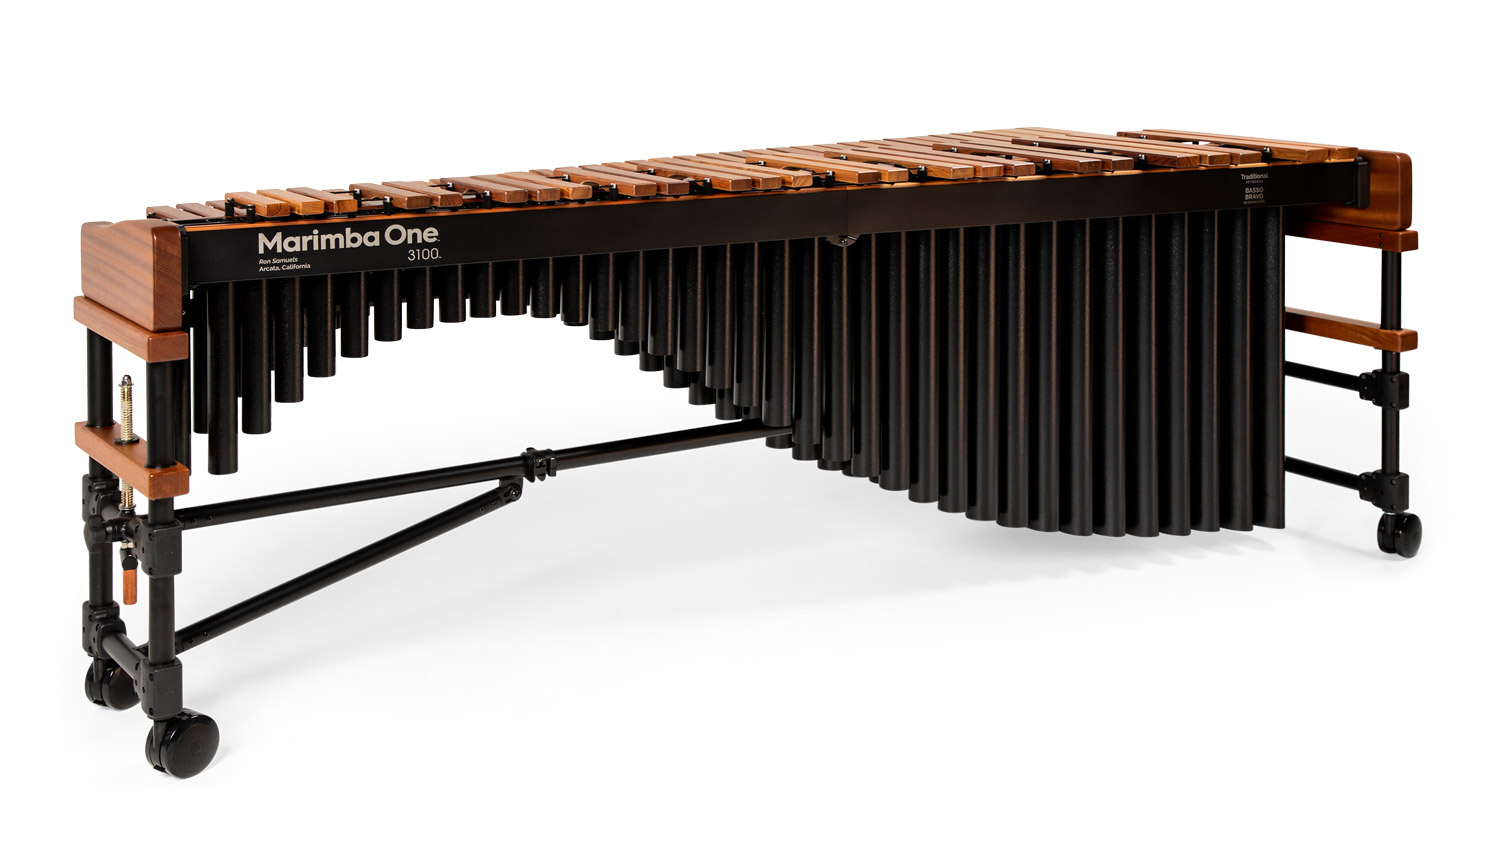 #9301 Marimba One 3100™ 5.0 Octave with Classic resonators, Traditional keyboard, 4″ Locking wheels 五個八度、經典共鳴管、傳統琴鍵、玫瑰木